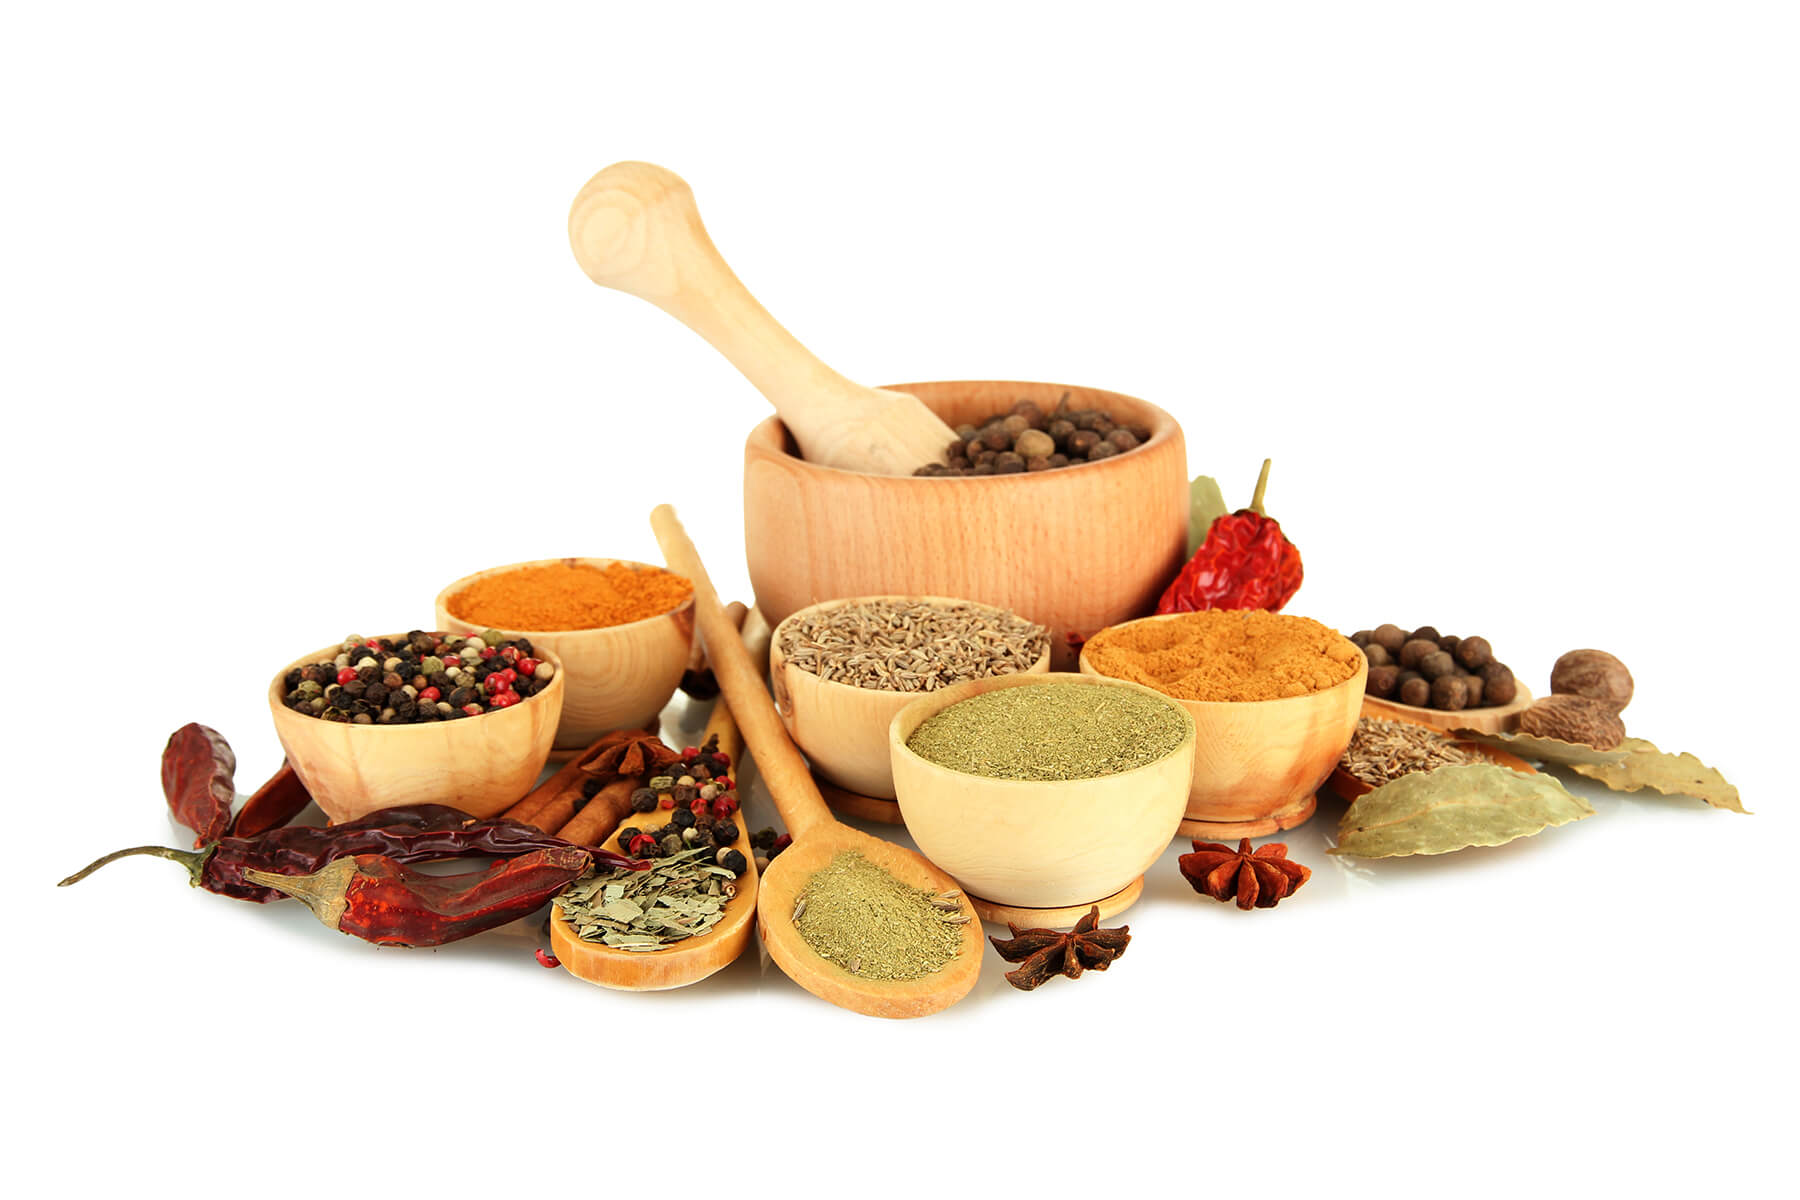 wooden-mortar-bowls-spoons-spices-isolated